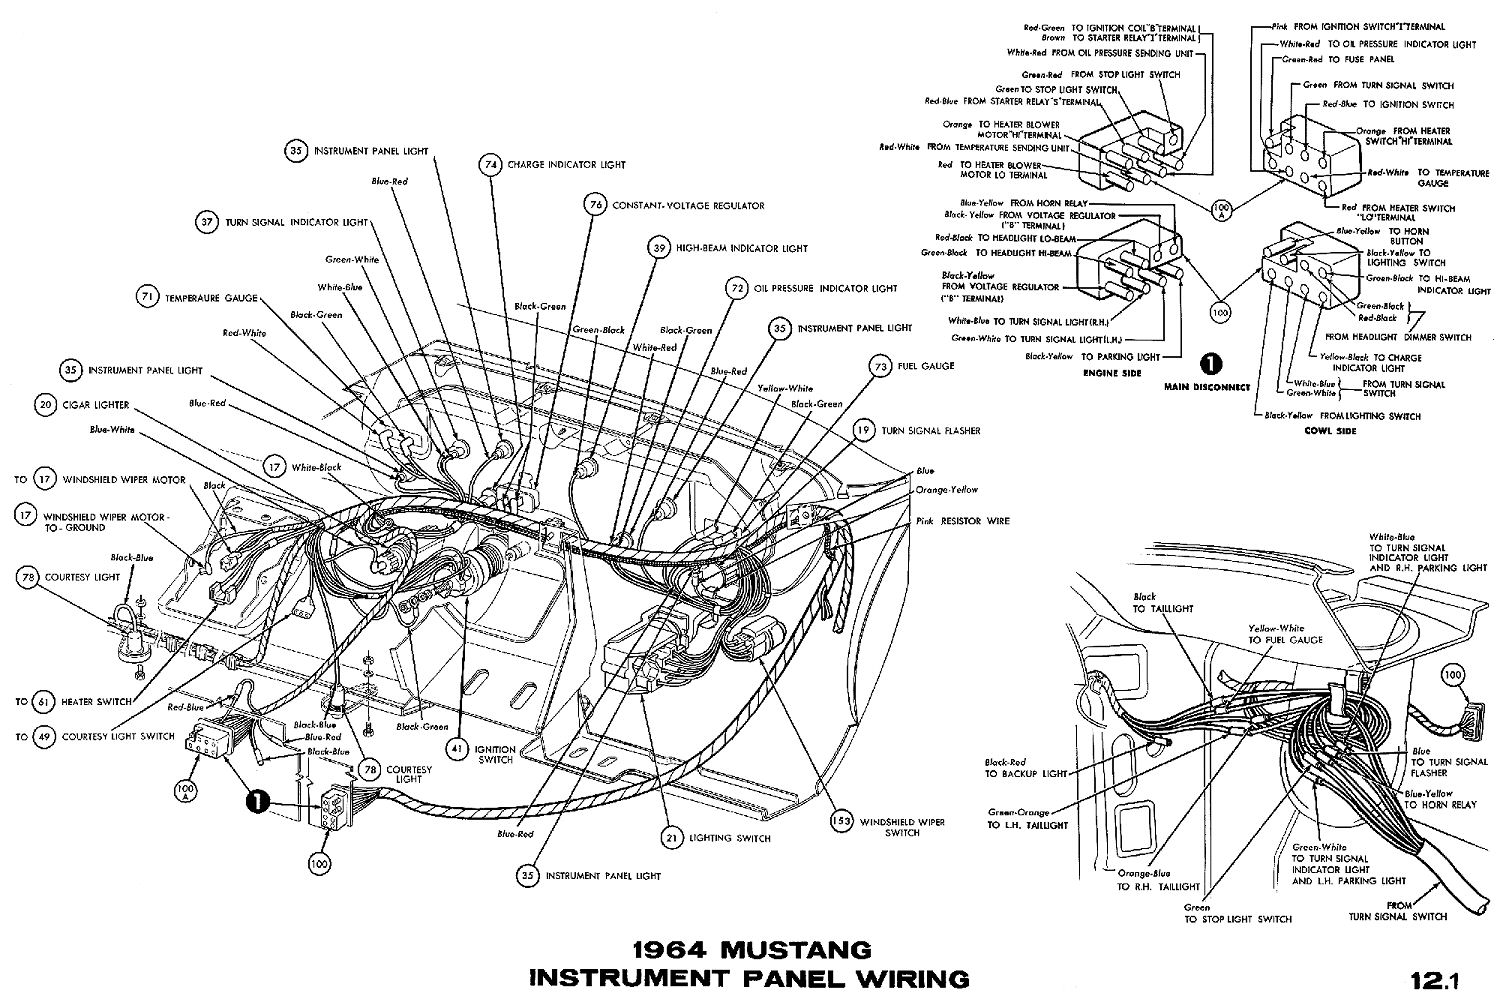 1964b 1969 mustang wiring diagram 2011 mustang wiring diagram \u2022 free 2005 ford mustang instrument cluster wiring diagram at readyjetset.co